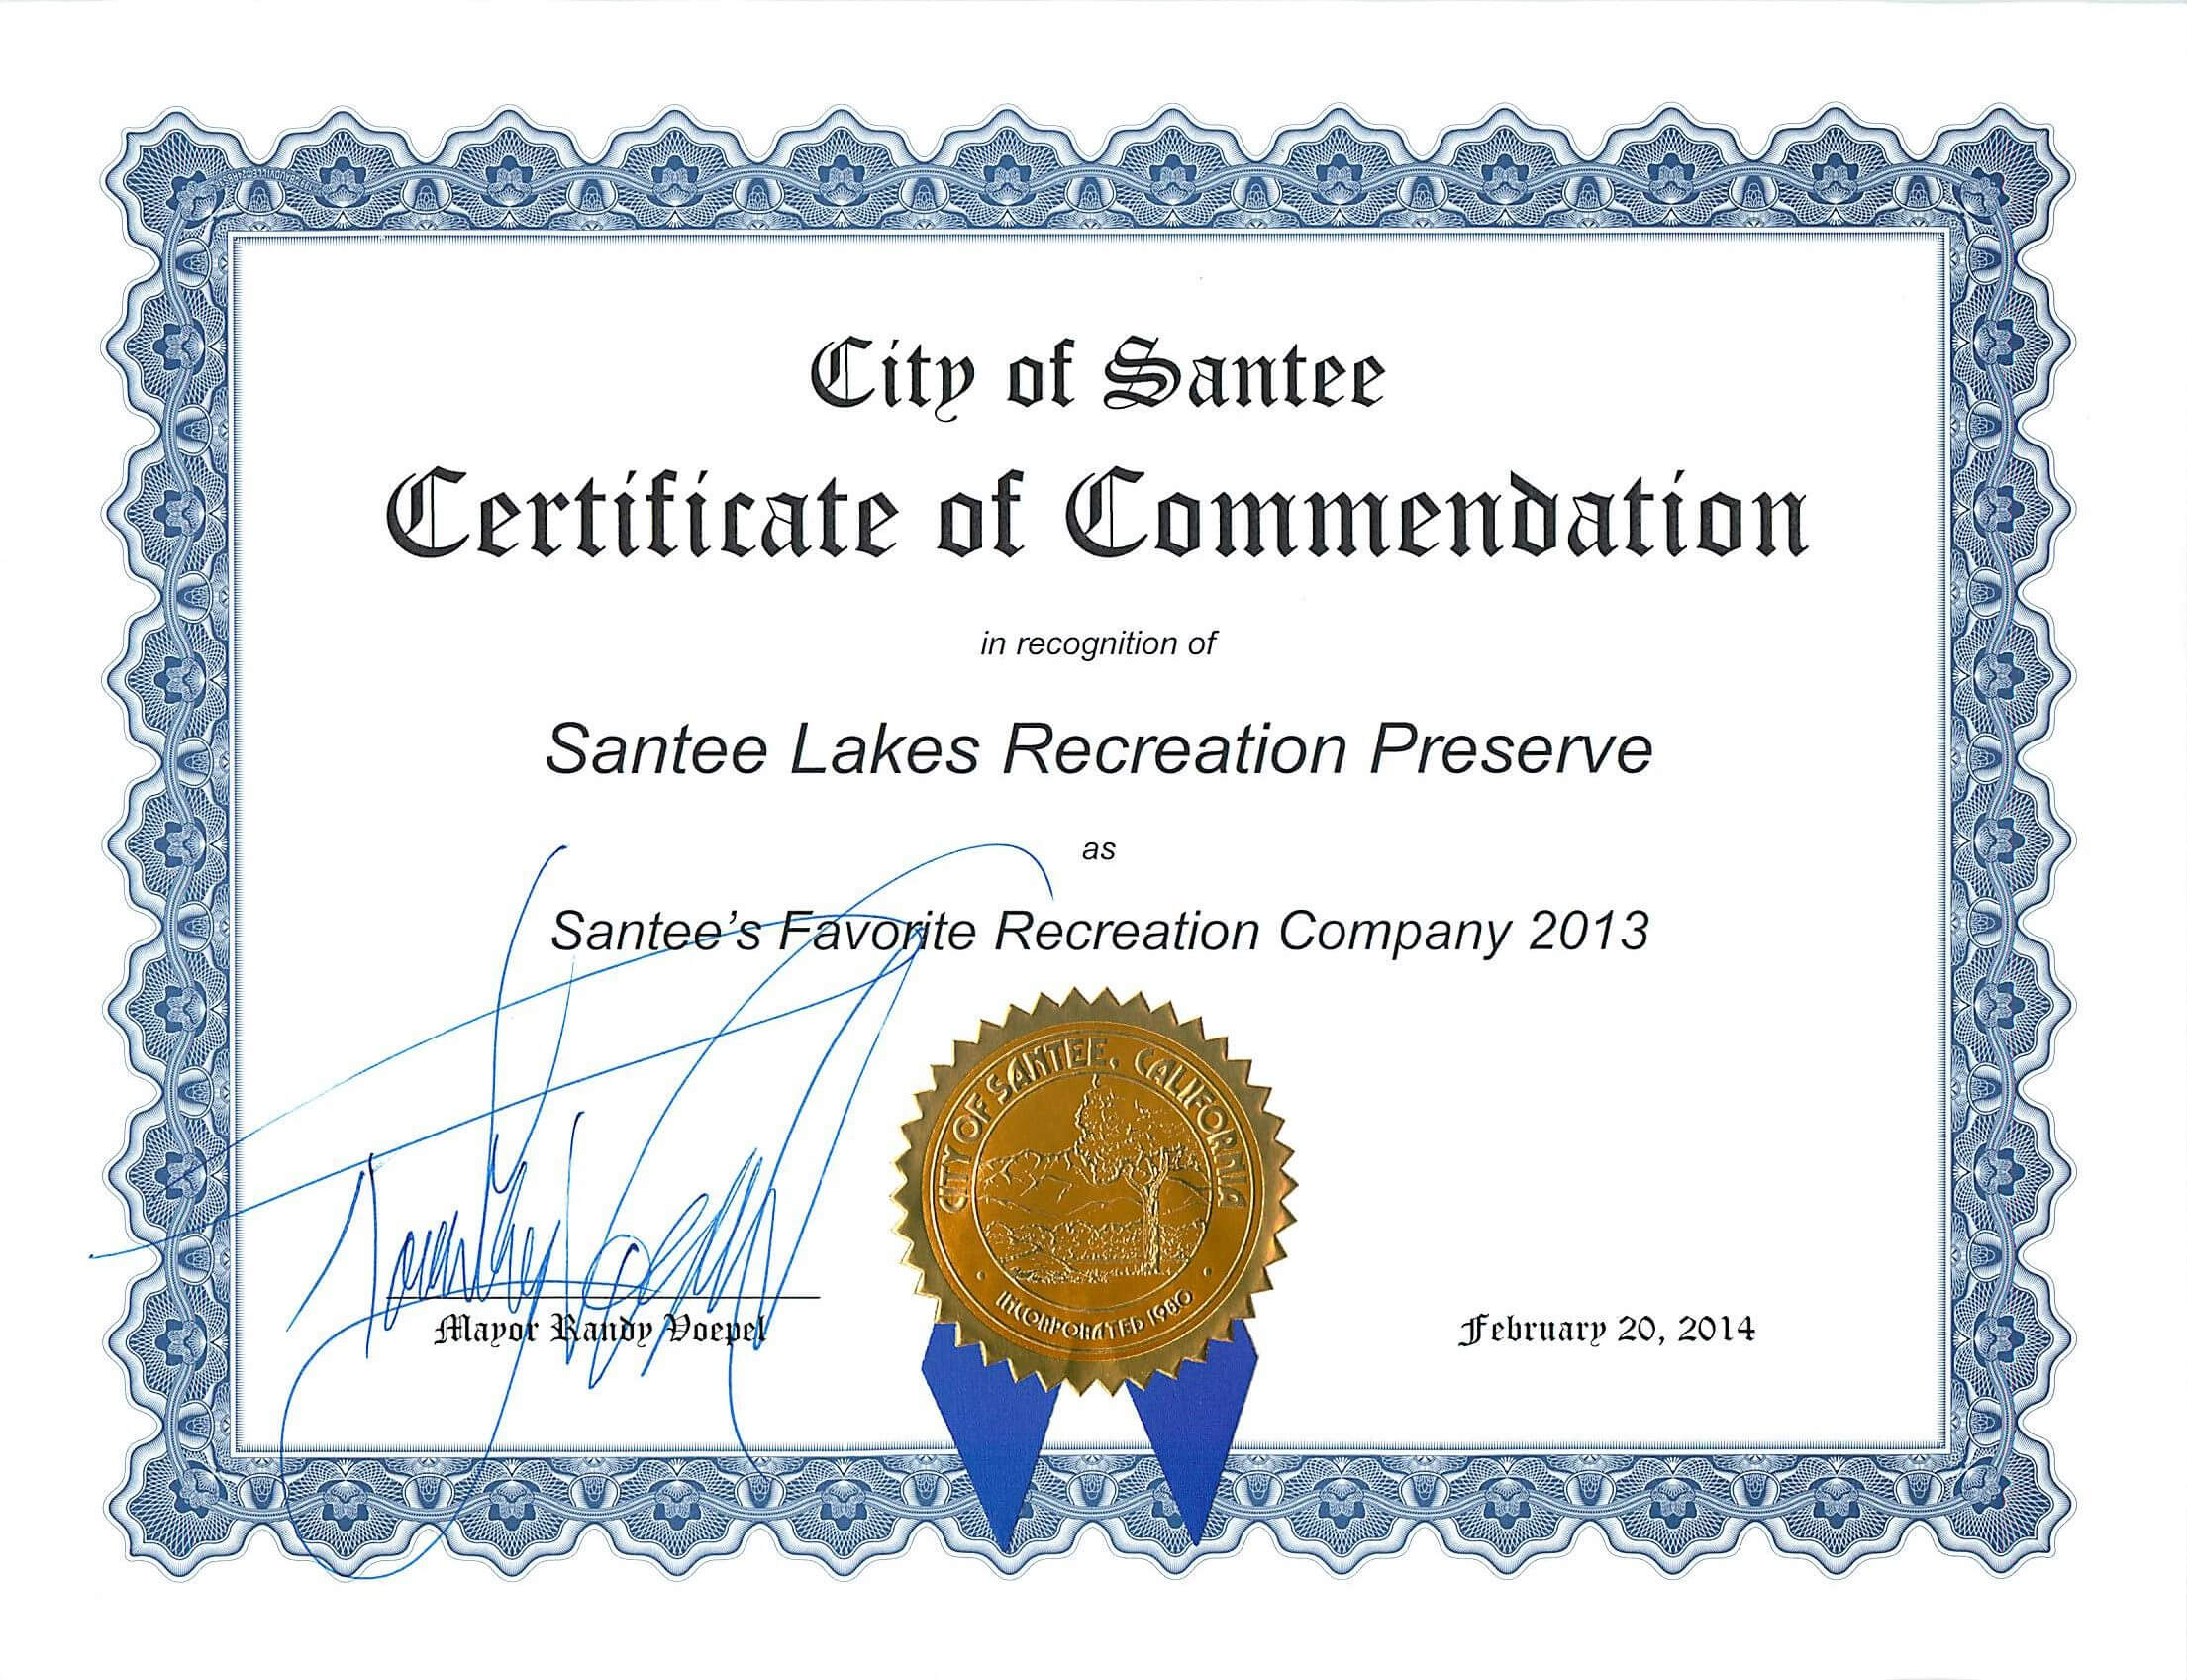 Certificate Of Commendation From The City Of Santee throughout Validation Certificate Template